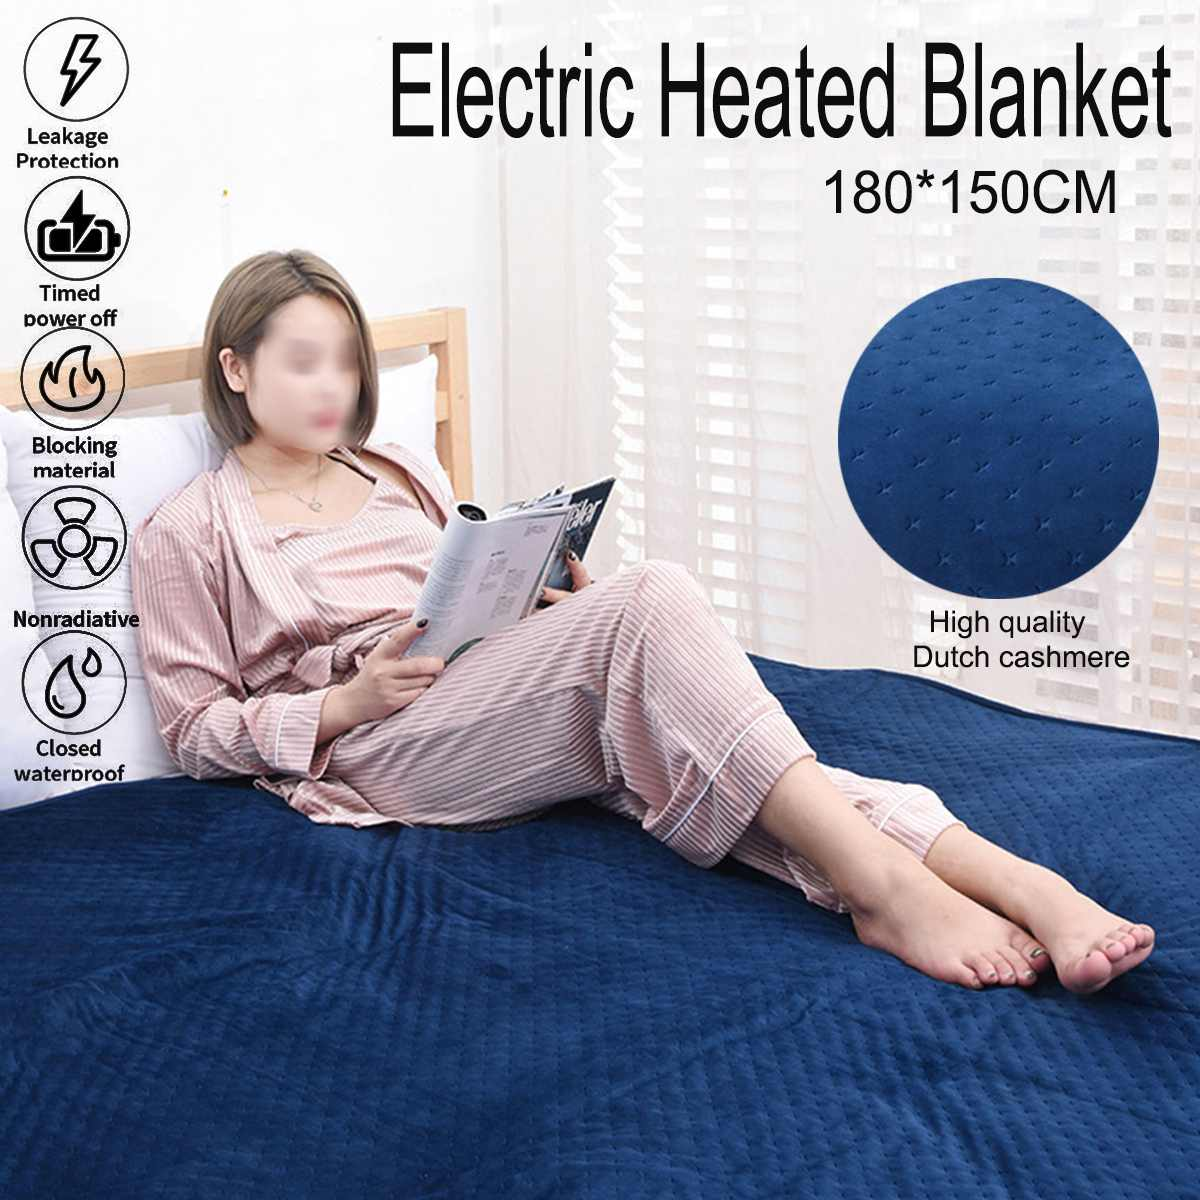 Electric Heated Carpet 180x150cm 220V Timing Heated Blanket Car Van Truck Fleece Cosy Warm Winter Electric Heater Blanket CoverElectric Heated Carpet 180x150cm 220V Timing Heated Blanket Car Van Truck Fleece Cosy Warm Winter Electric Heater Blanket Cover